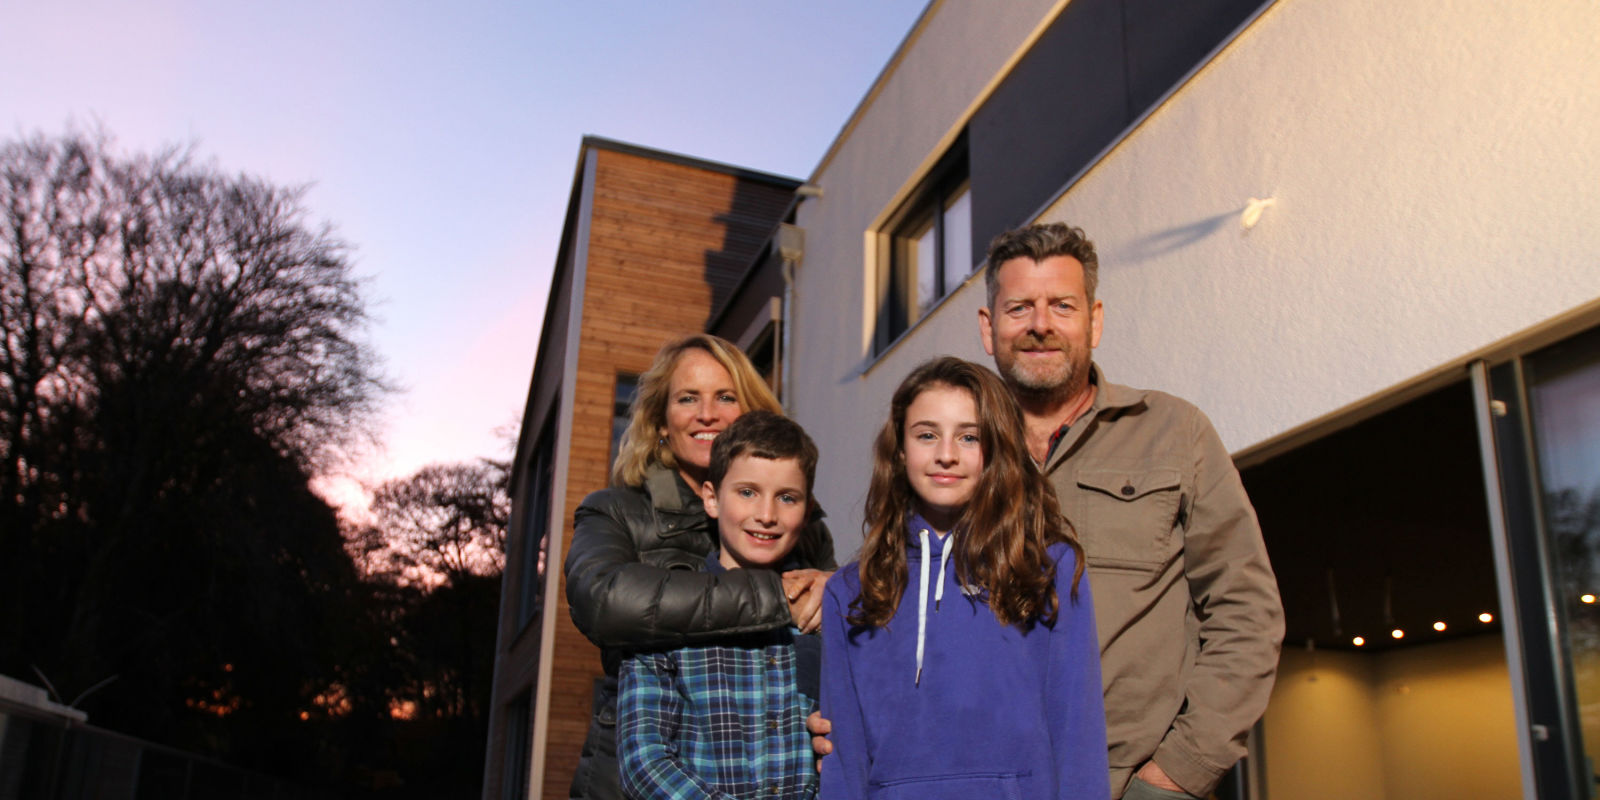 Flat Pack Mansions Couple Build Three Storey Family Home